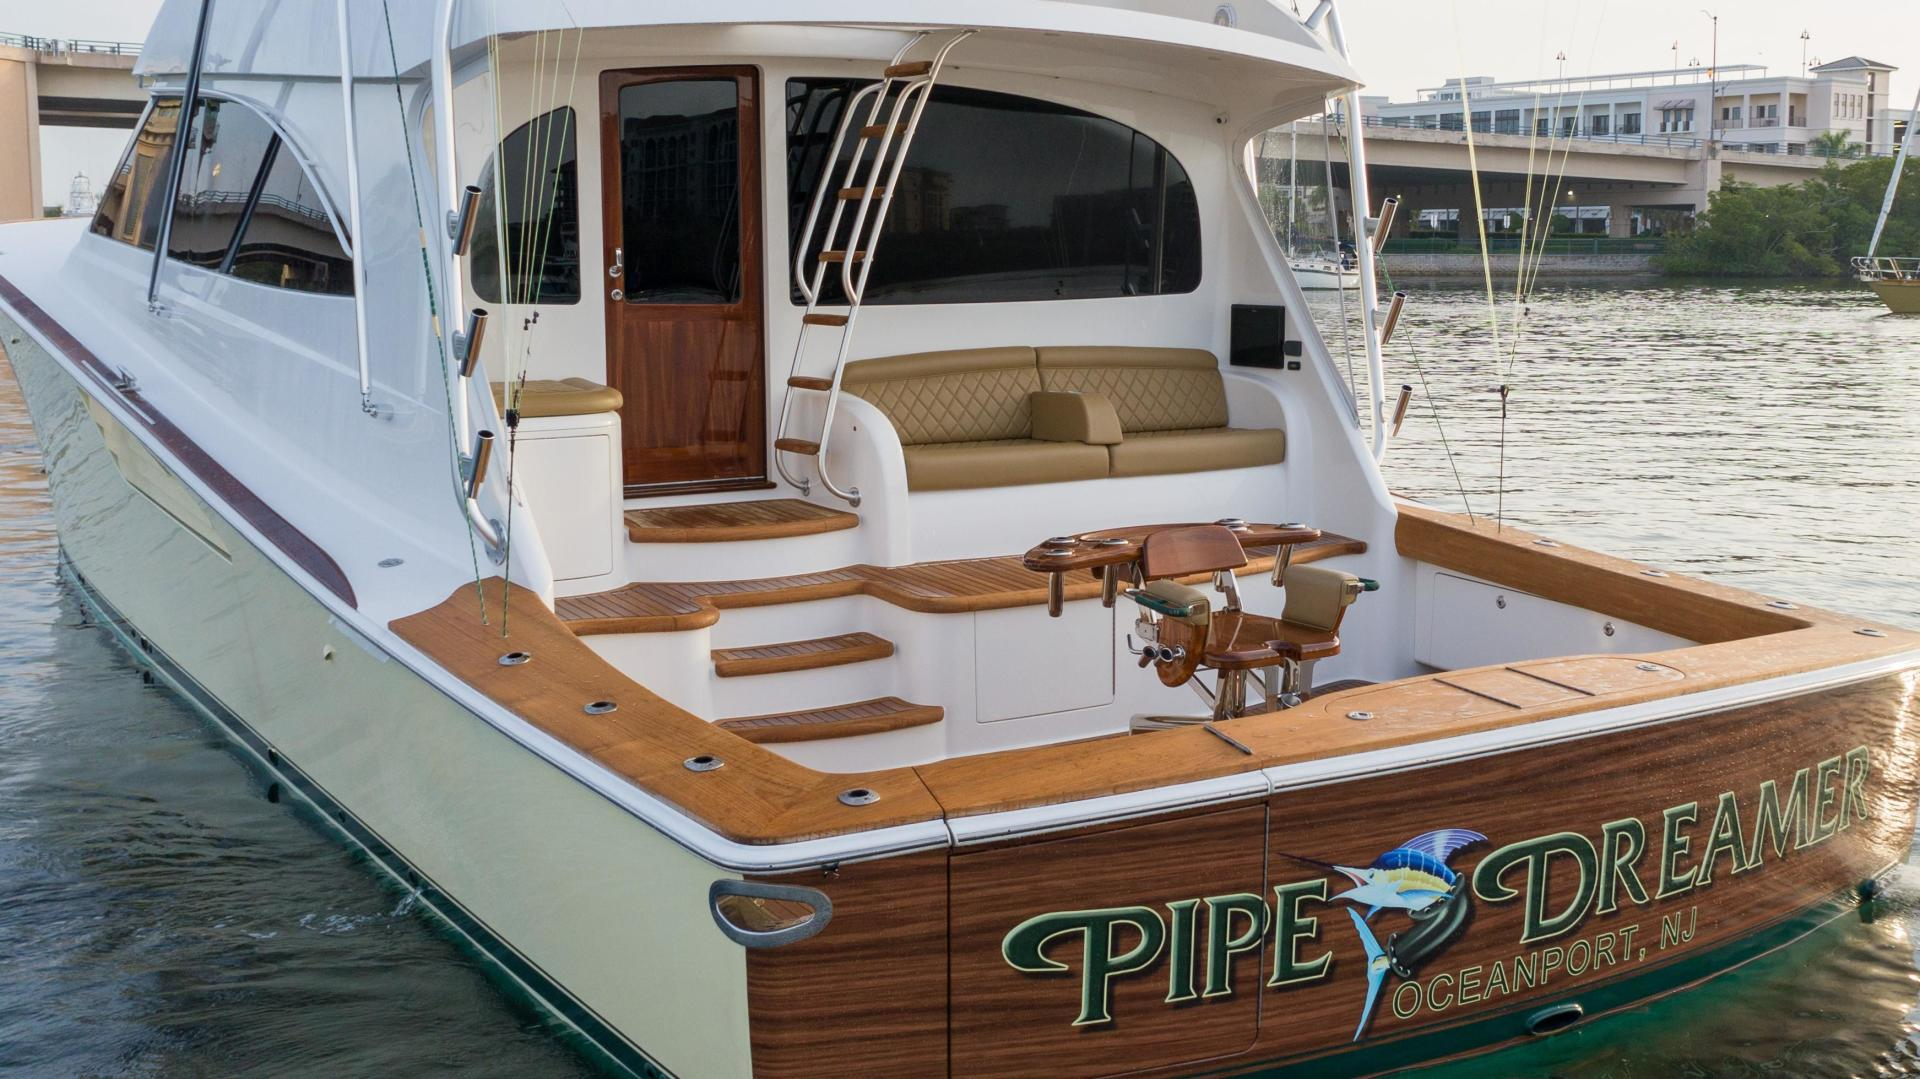 Viking-Sport Fish 2015-PIPE DREAMER Brielle-New Jersey-United States-1473186 | Thumbnail